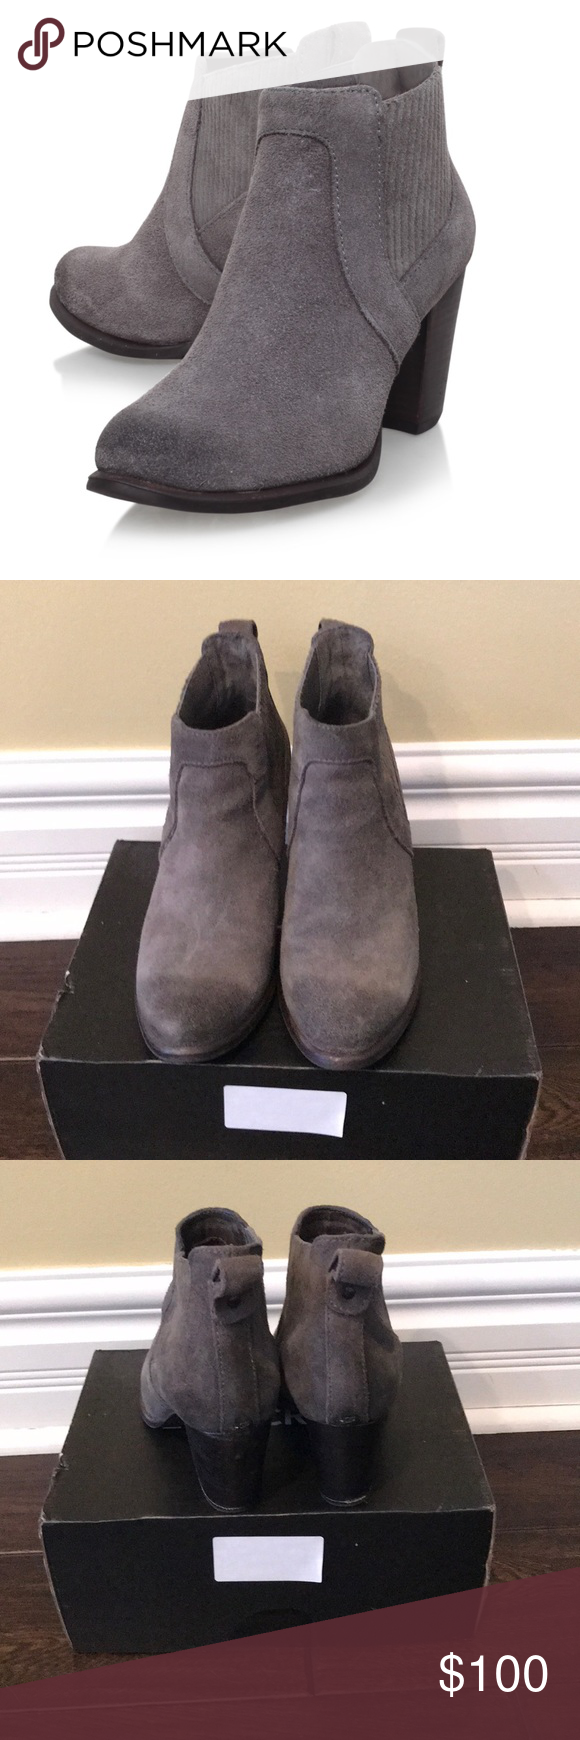 d067732cb45 NWOT Ugg Cobie ii Grey Ankle Suede Boots These boots feature memory ...